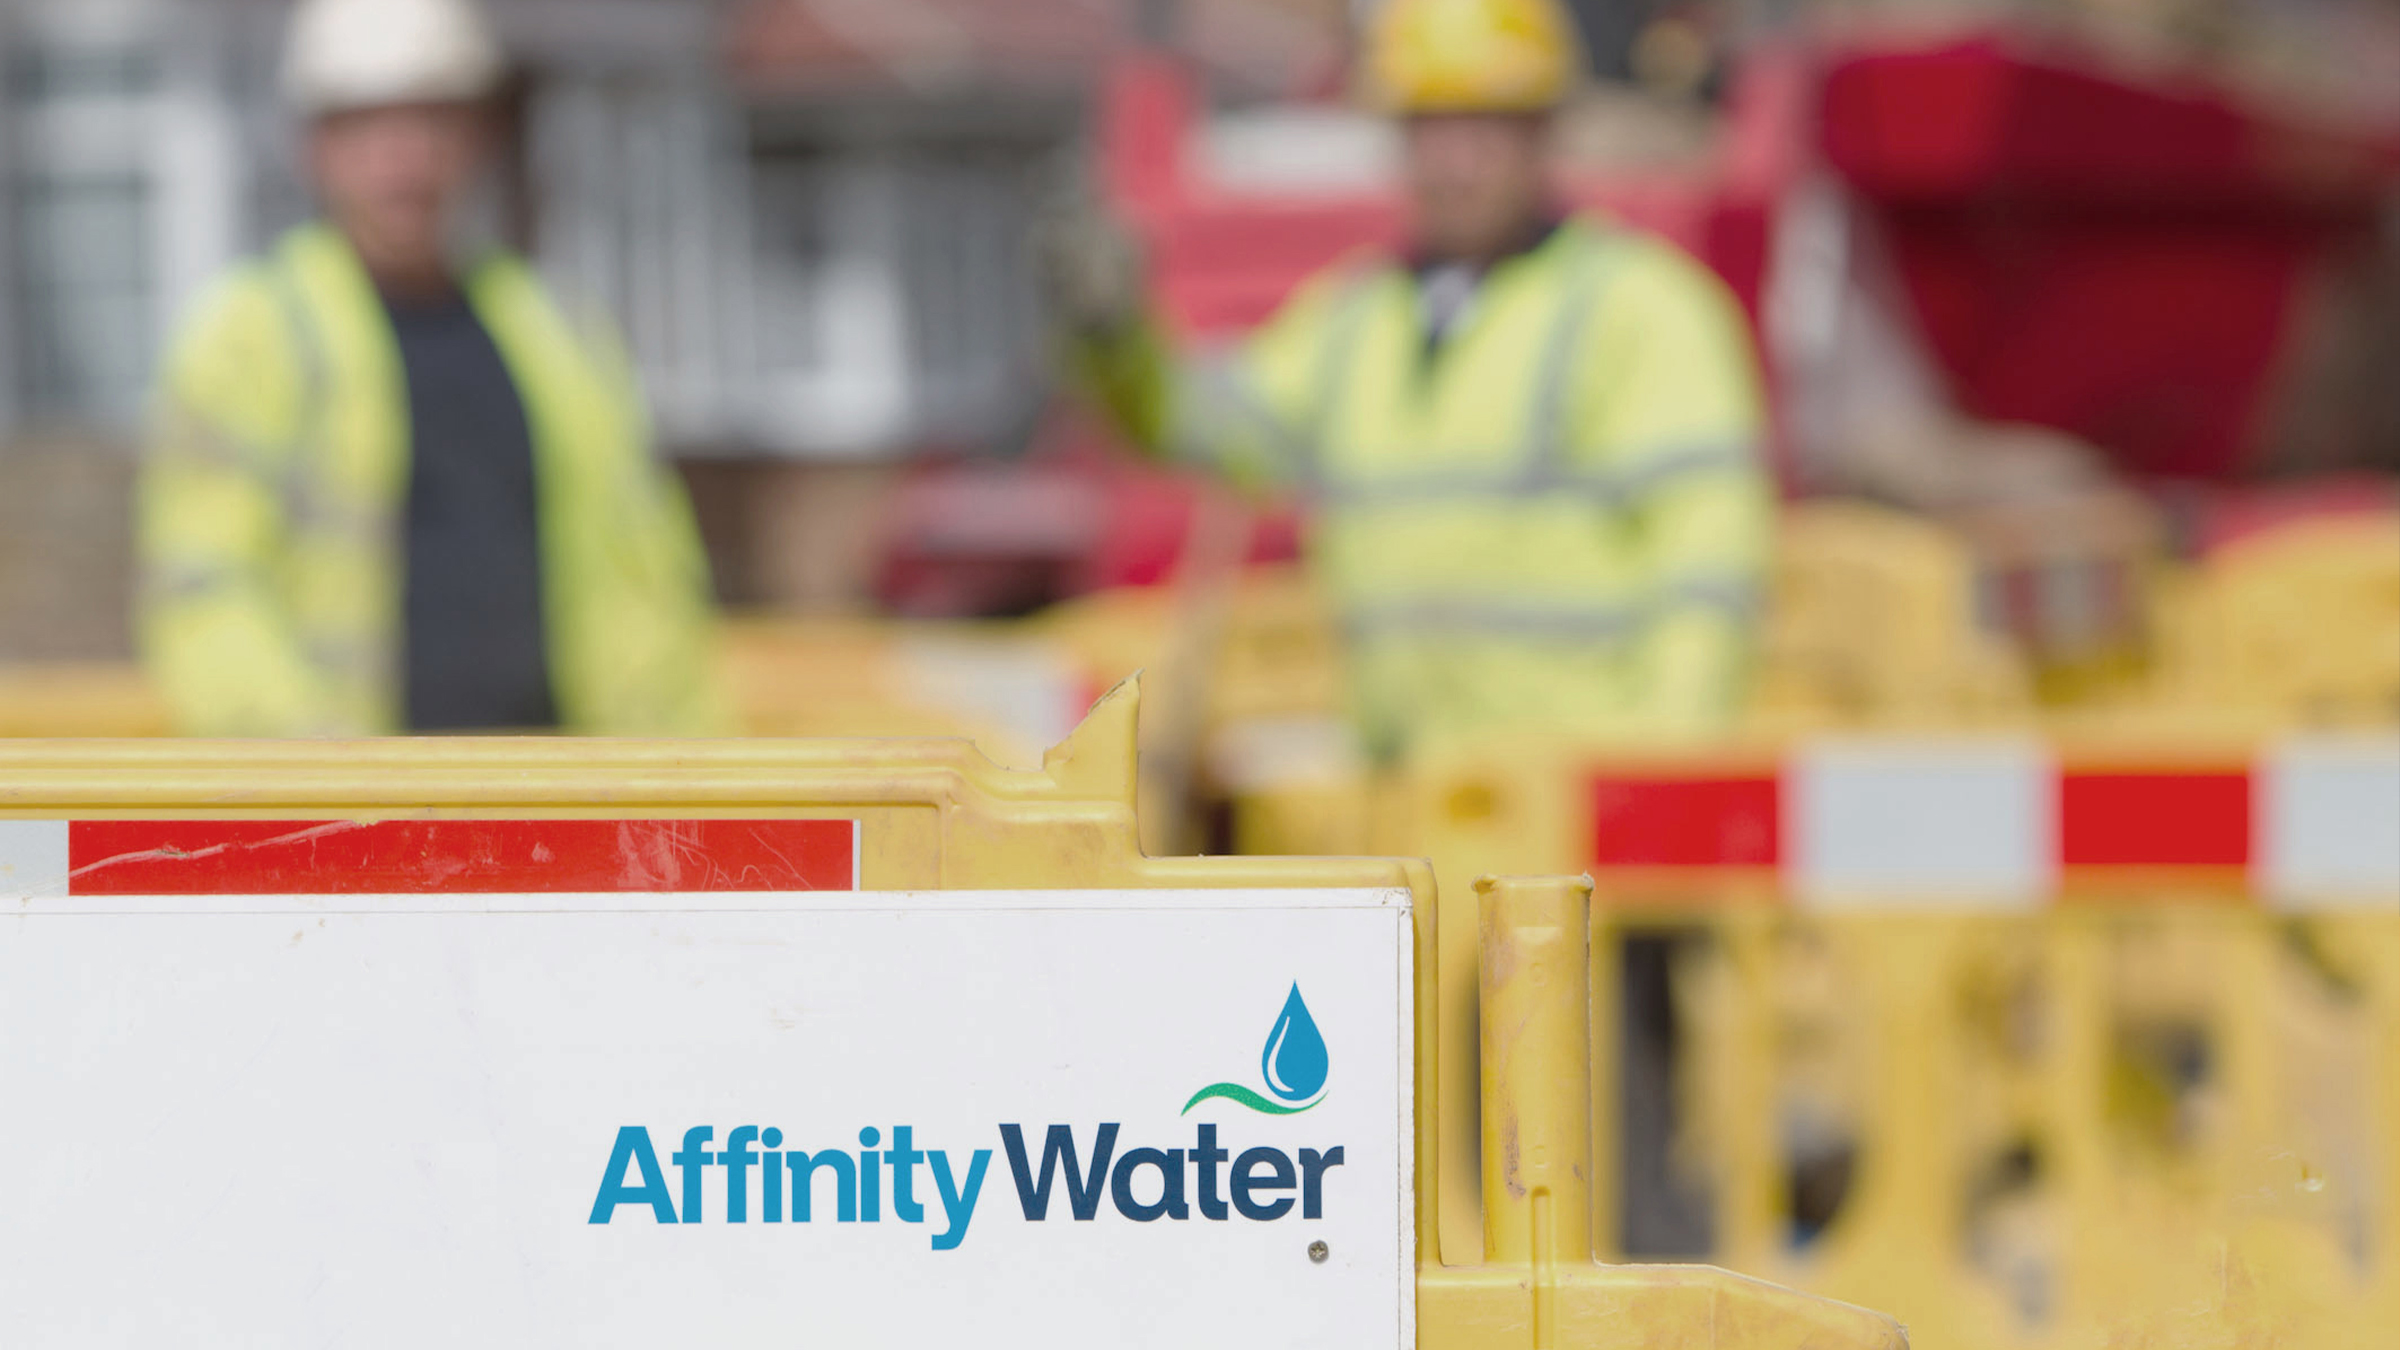 Affinity Water Migrating over 70 Projects to Asite Following Multi-Year Deal